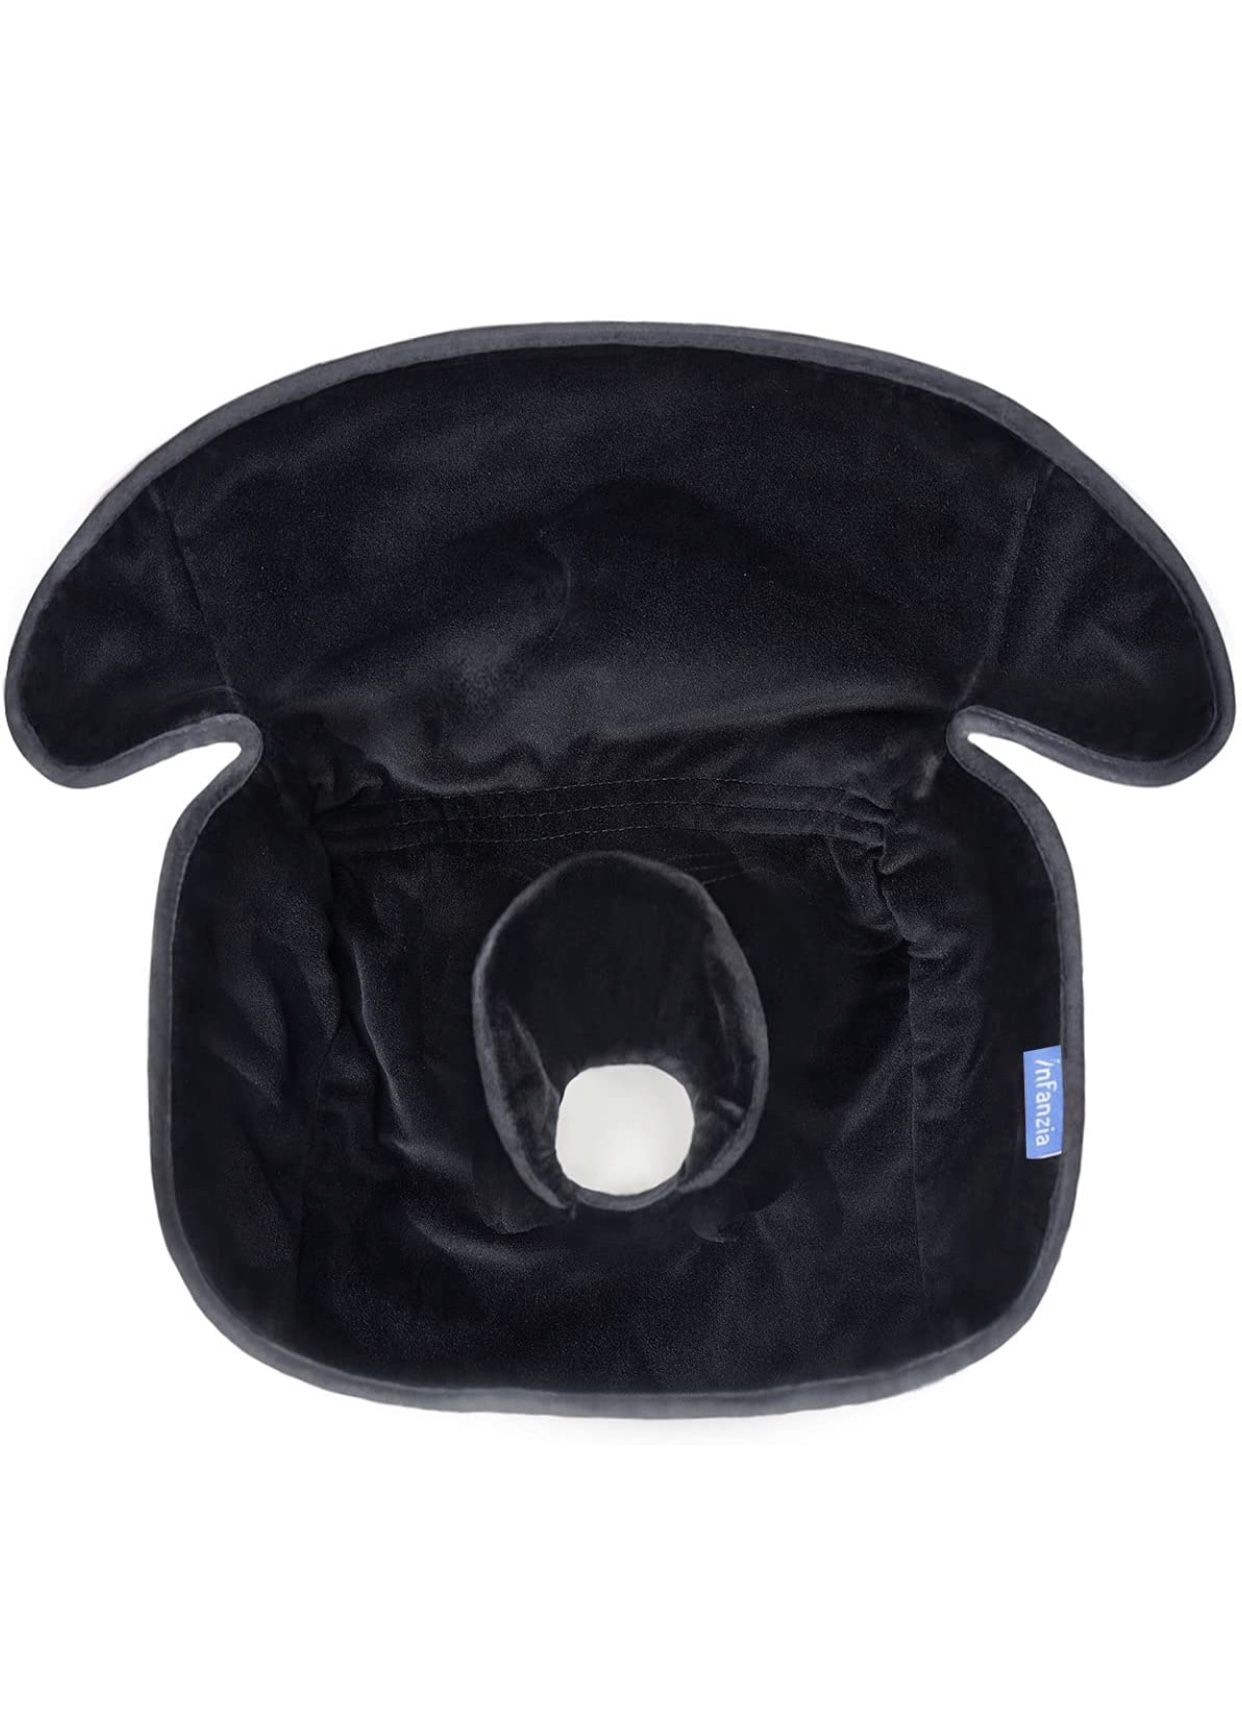 Car Seat Protector Waterproof Carseat Liner Potty Training Toddlers, Baby and Infants, Piddle Pad for Carseats Strollers